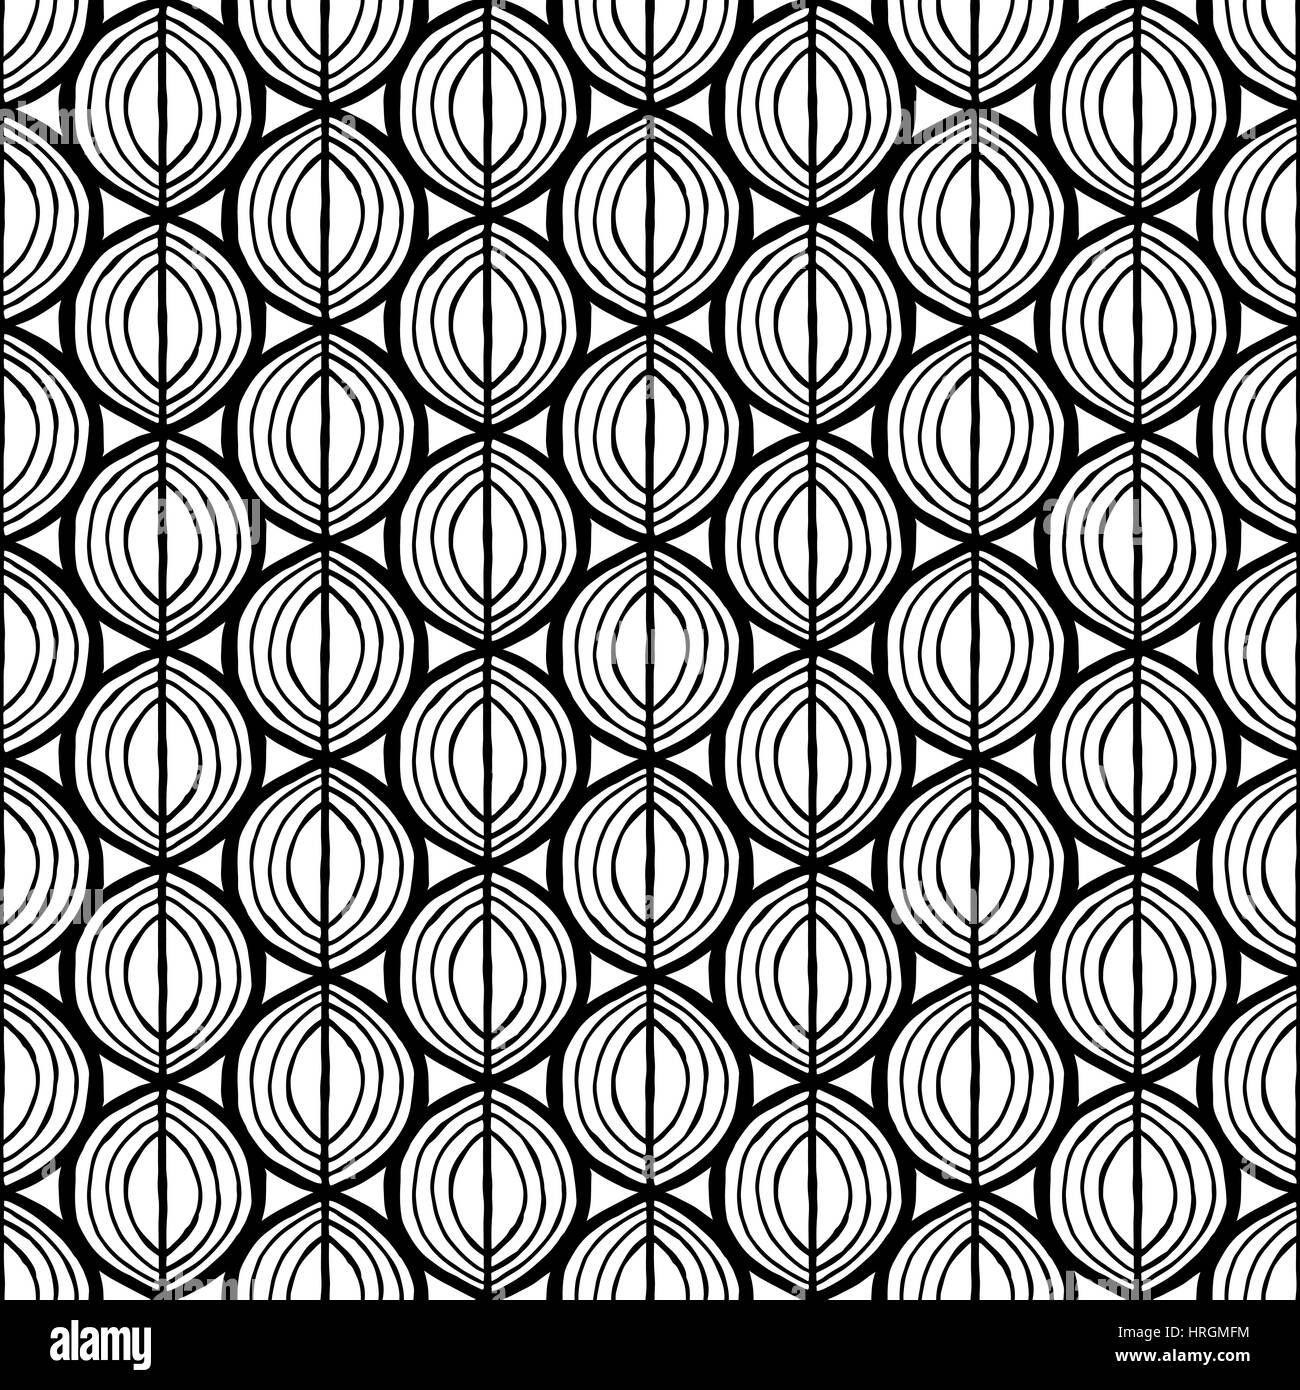 Primitive leaves, seamless floral pattern. Tribal ethnic background, simplistic geometry, black and white. Textile - Stock Image